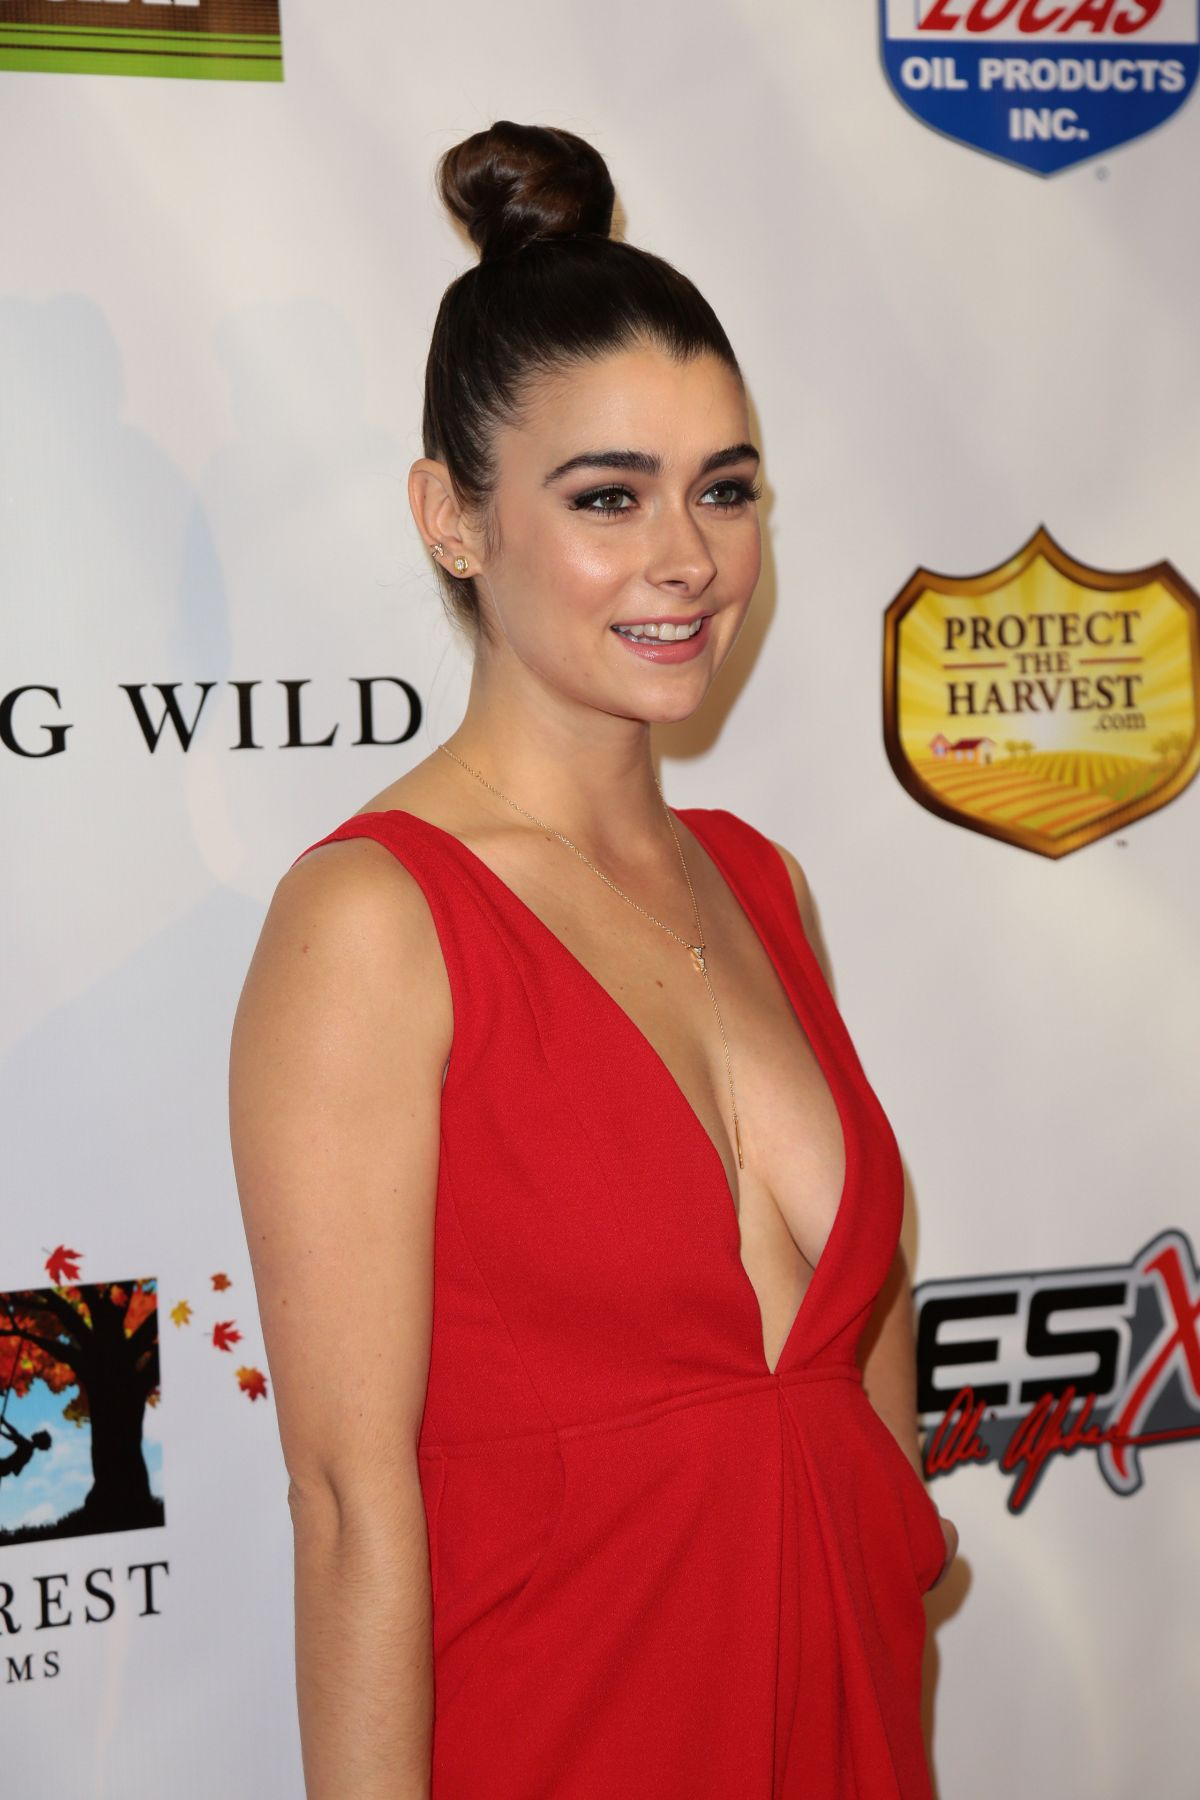 Wild' 'running Los In At Paige Angeles Allison Premiere 02062017 gYbf76y